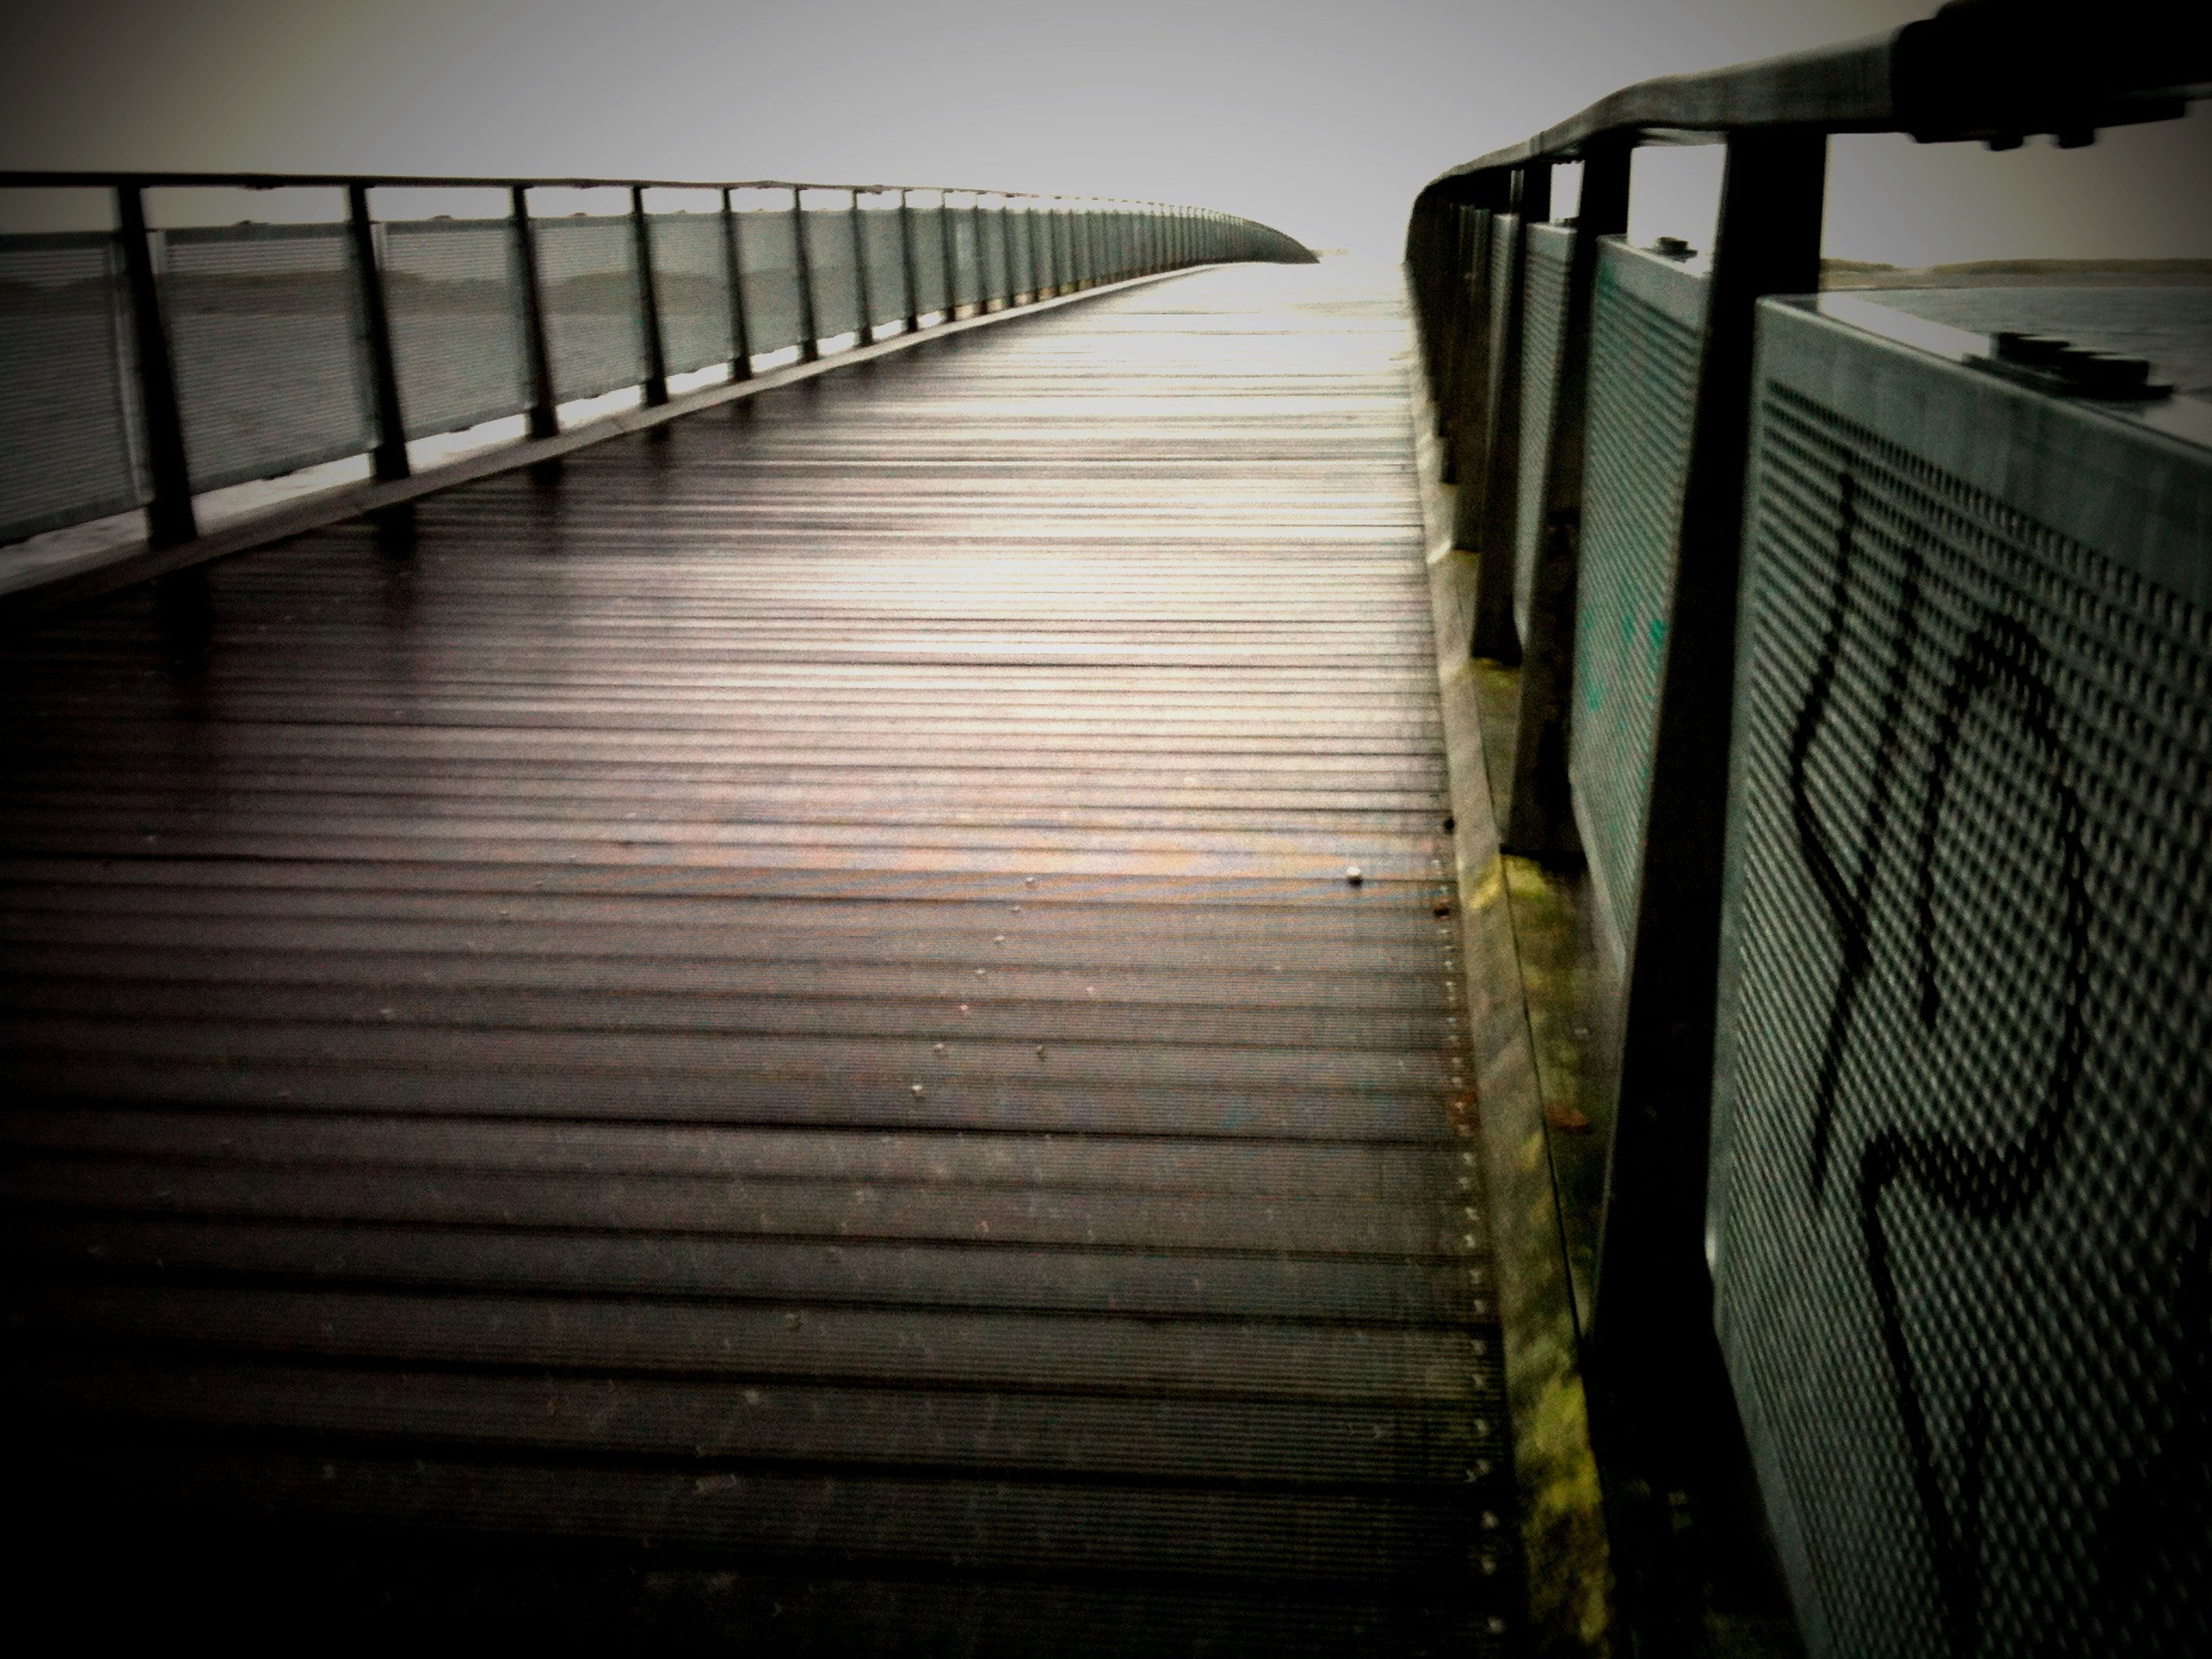 wood - material, wooden, wood, railing, plank, boardwalk, the way forward, built structure, pier, sunlight, nature, fence, no people, day, sky, outdoors, sea, diminishing perspective, close-up, tranquility